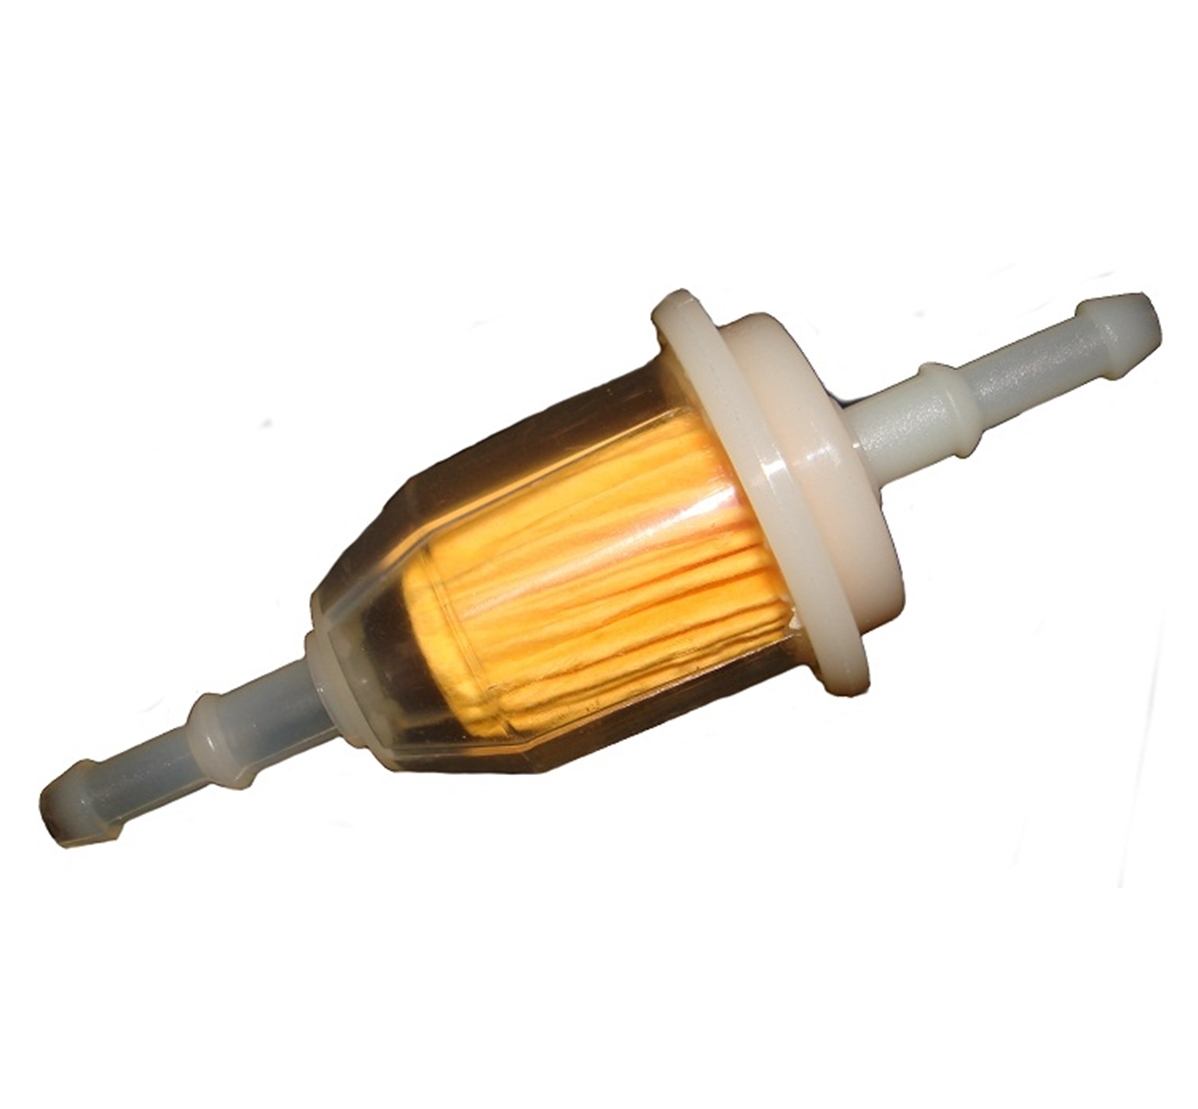 hight resolution of fuel filter for john deere mowers tractors utility vehicles part am116304 m147272 gy20709